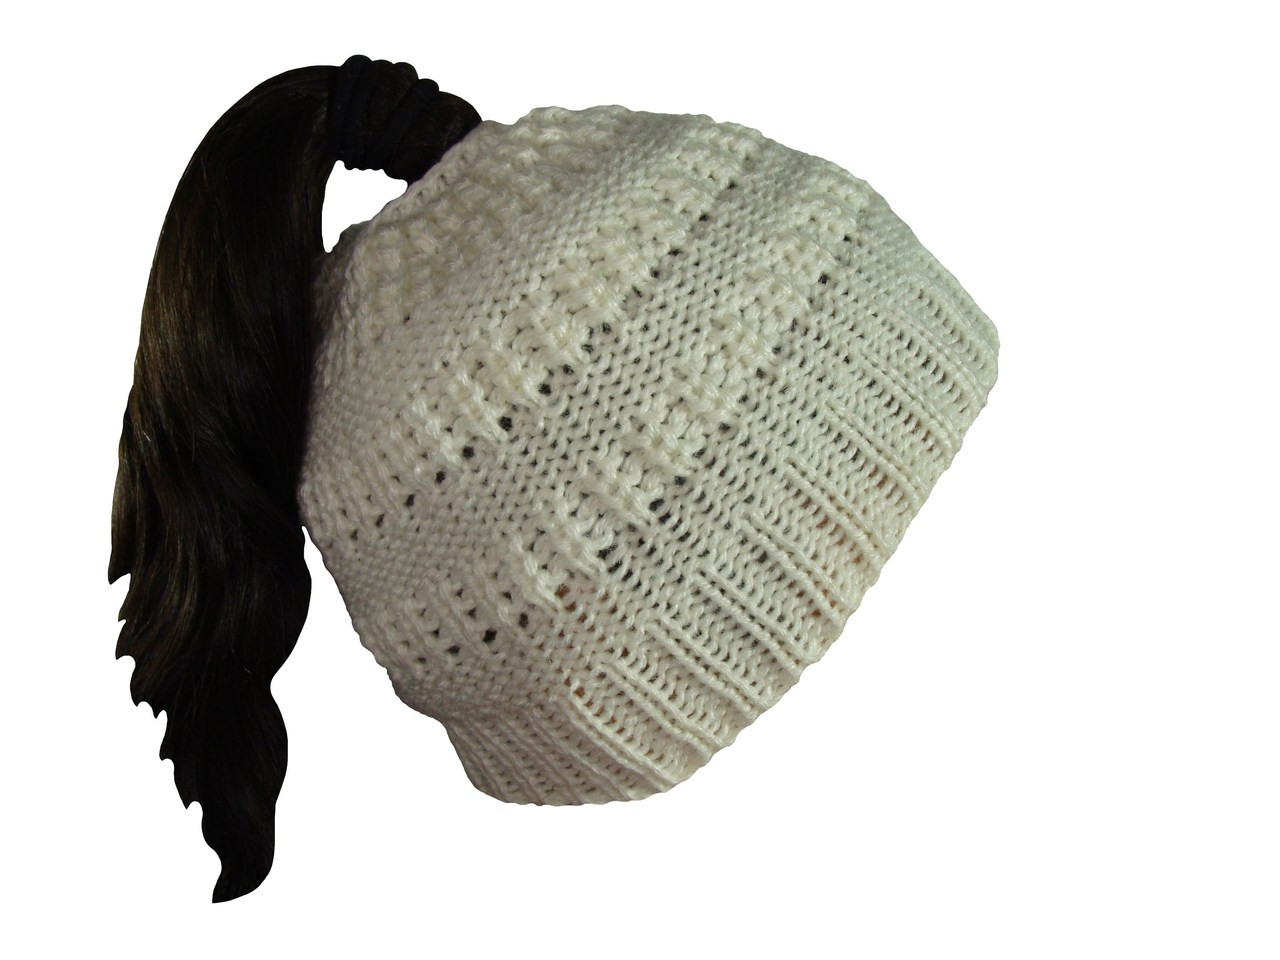 3af12cd0b19 ... Ponytail Messy Bun Knitted Ponytail Winter Beanie Crocheted in 100%  Alpaca